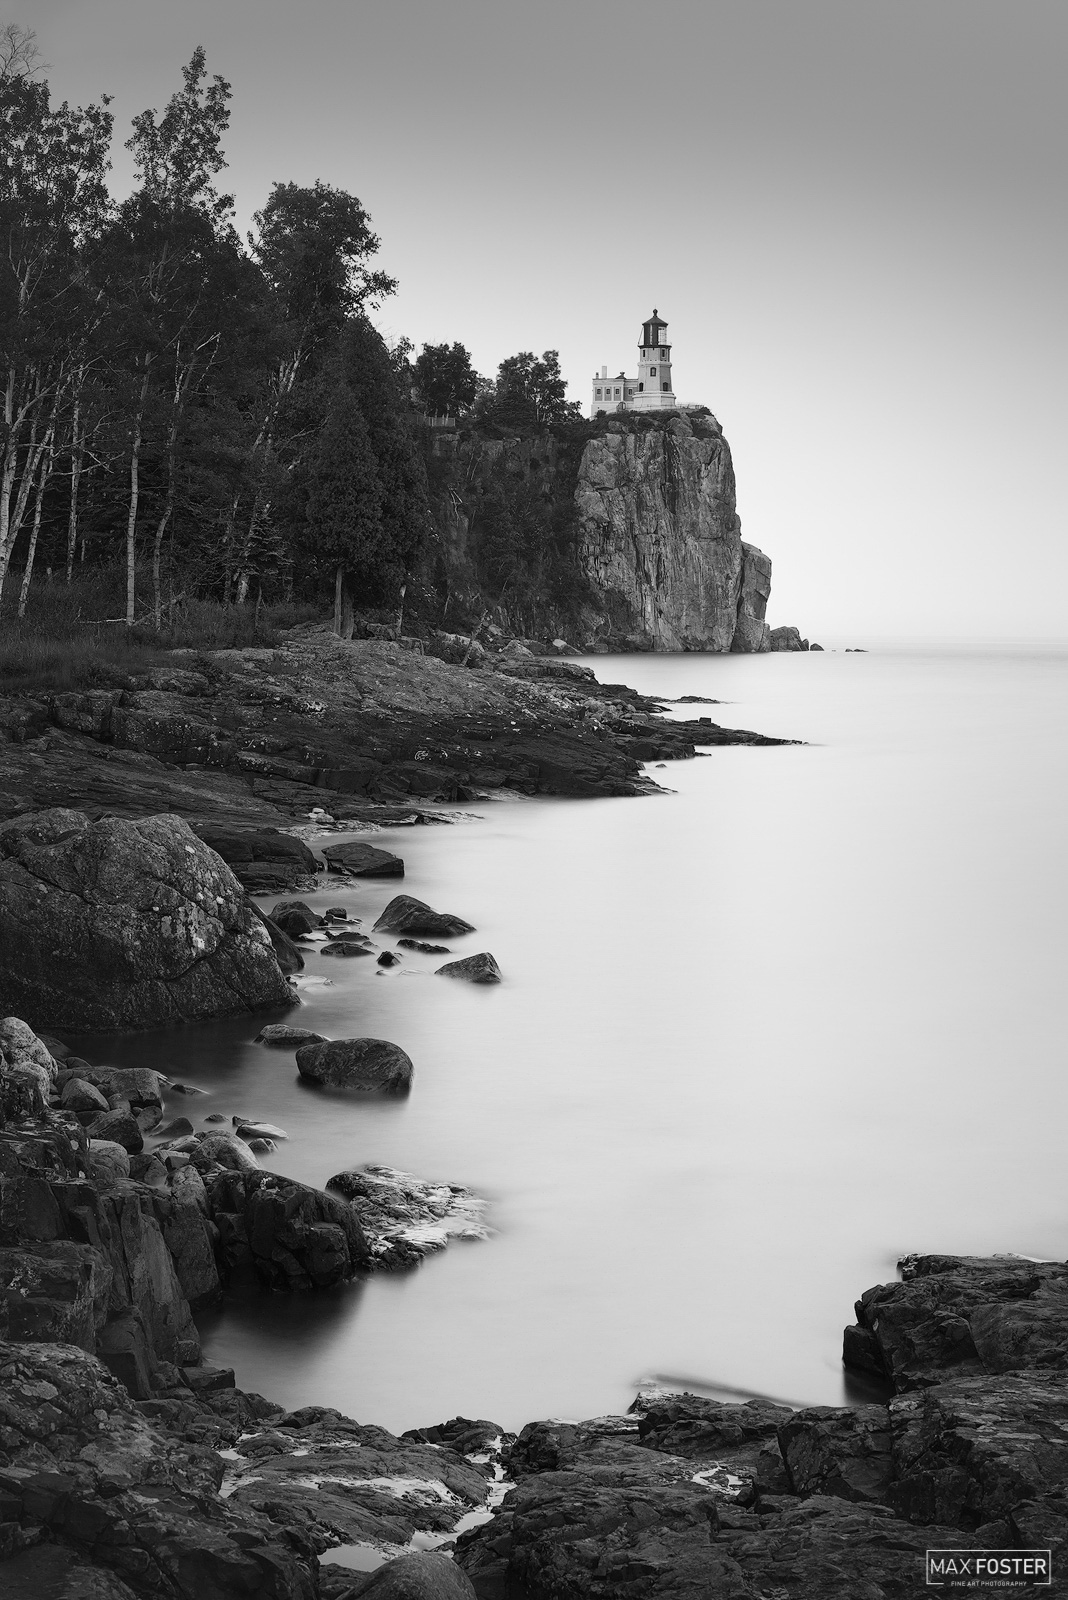 Fine Art Limited Edition of 50 Split Rock Lighthouse in Silver Bay, Minnesota was built in response to the great loss of ships...